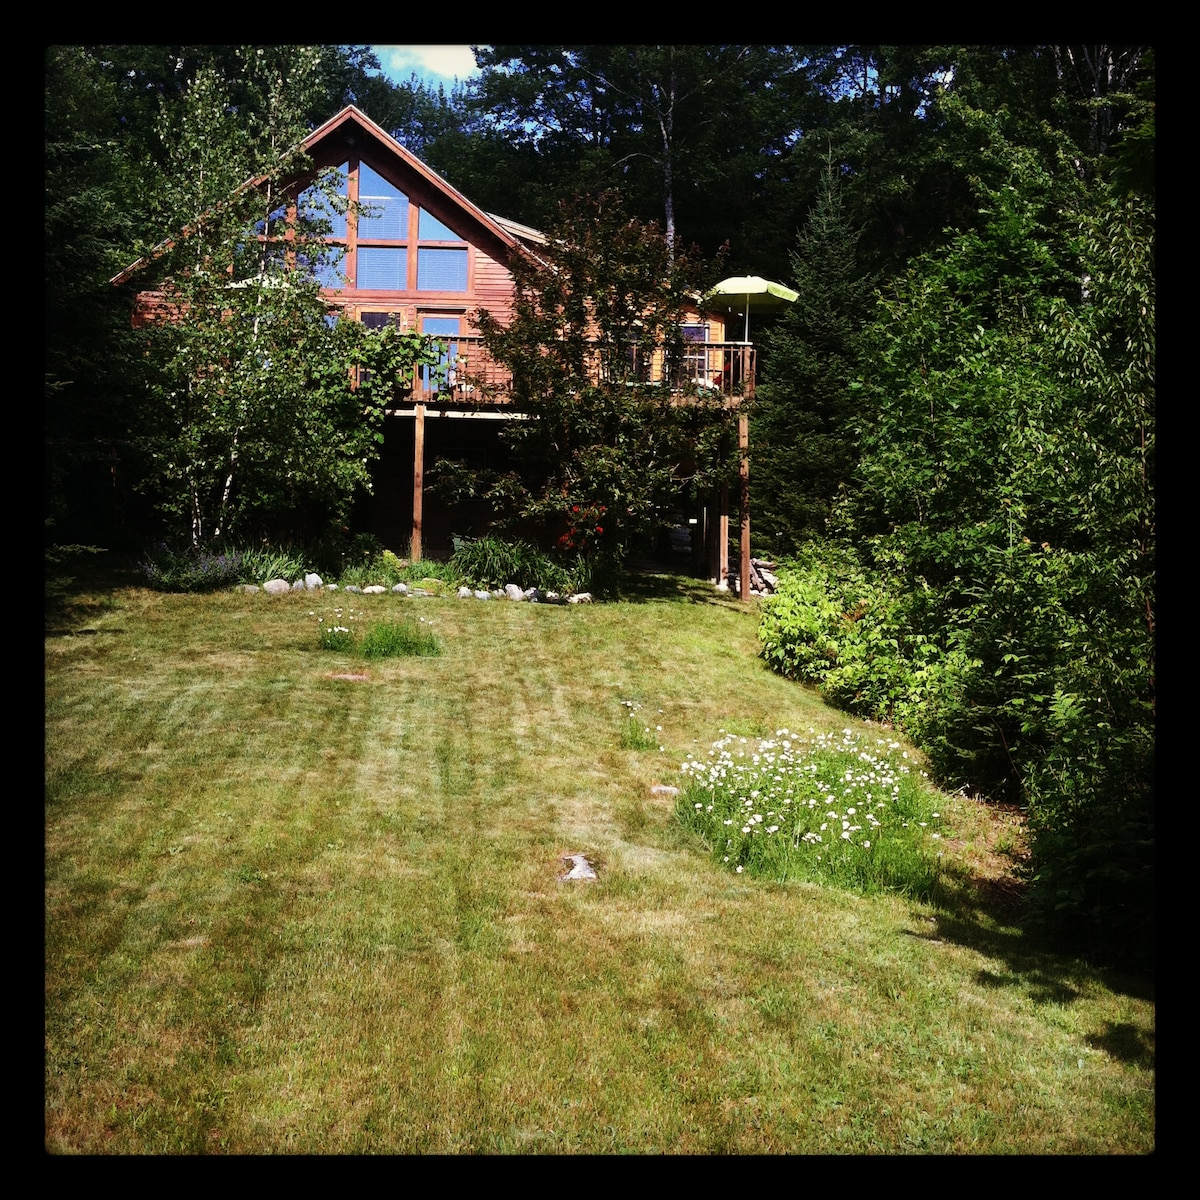 """7.5 Acres with the little cabin home we named """"Sparrowhawk"""""""